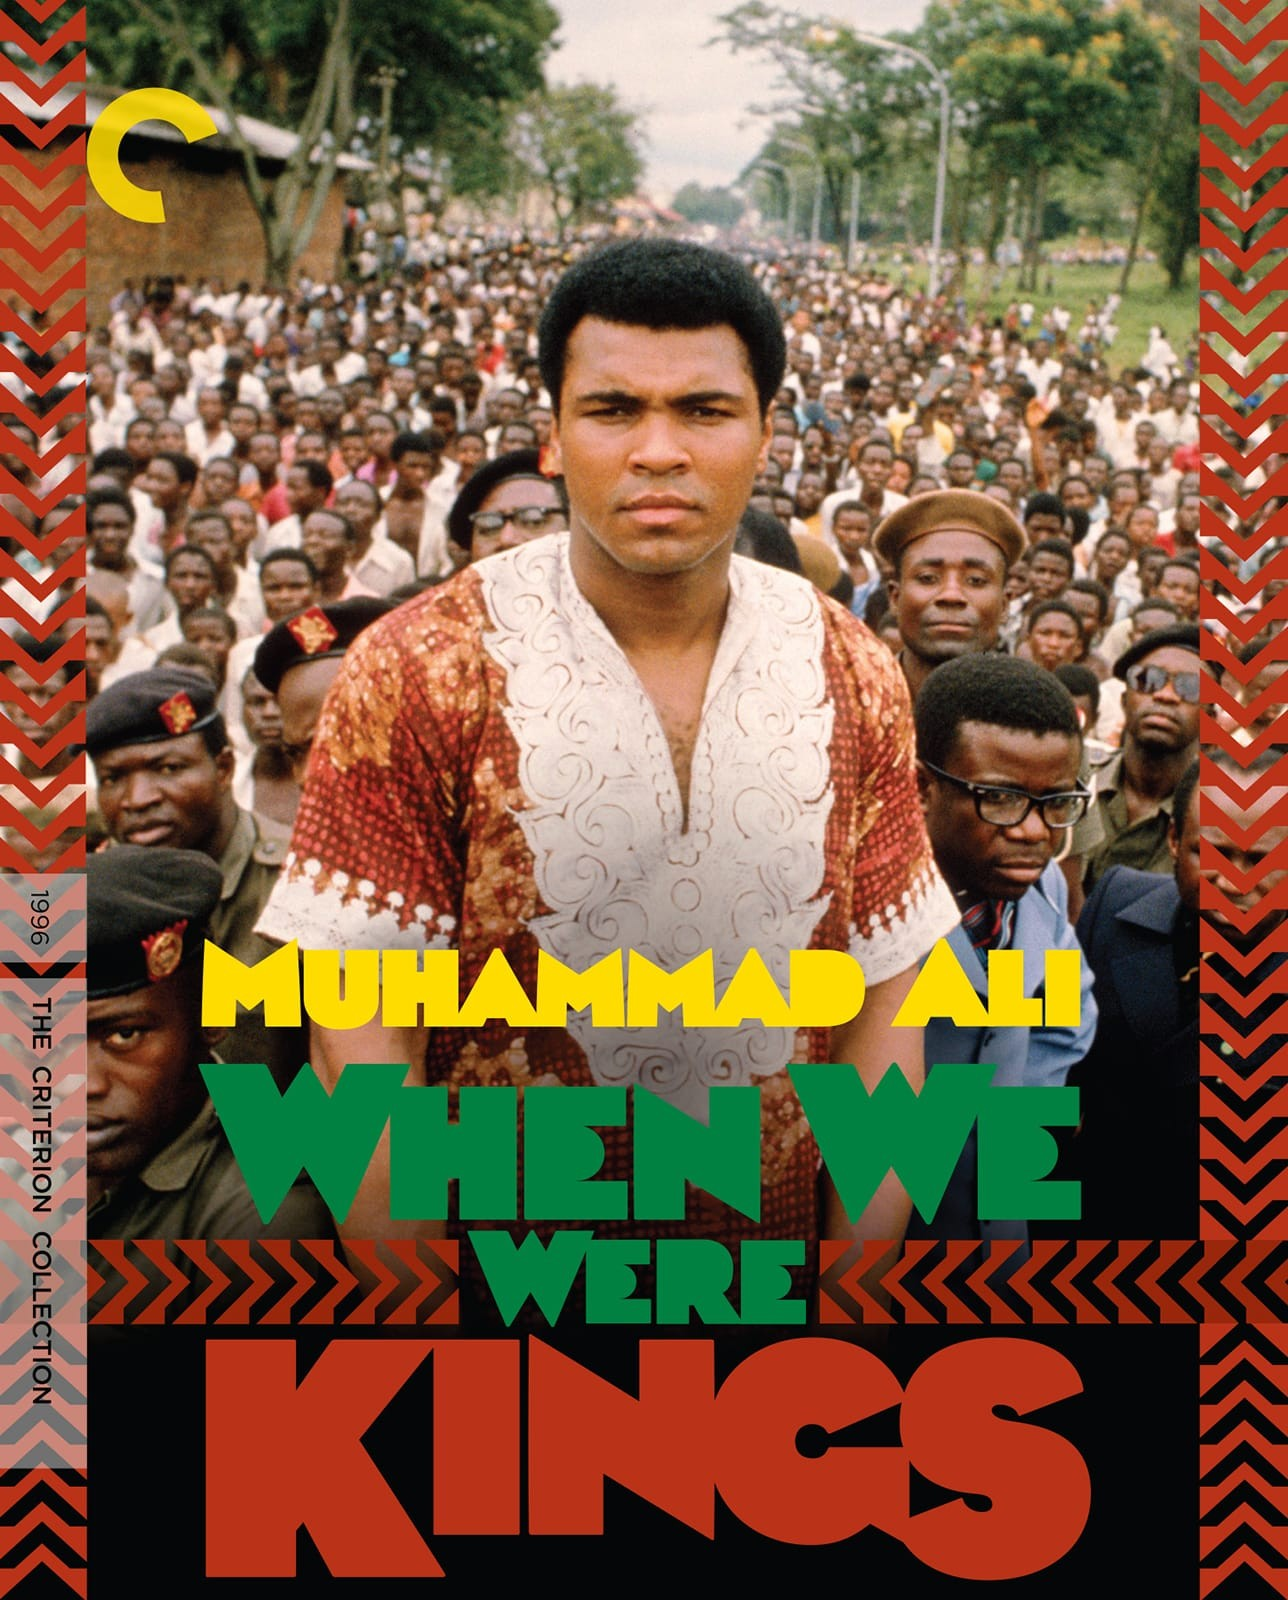 When We Were Kings (1996) | The Criterion Collection